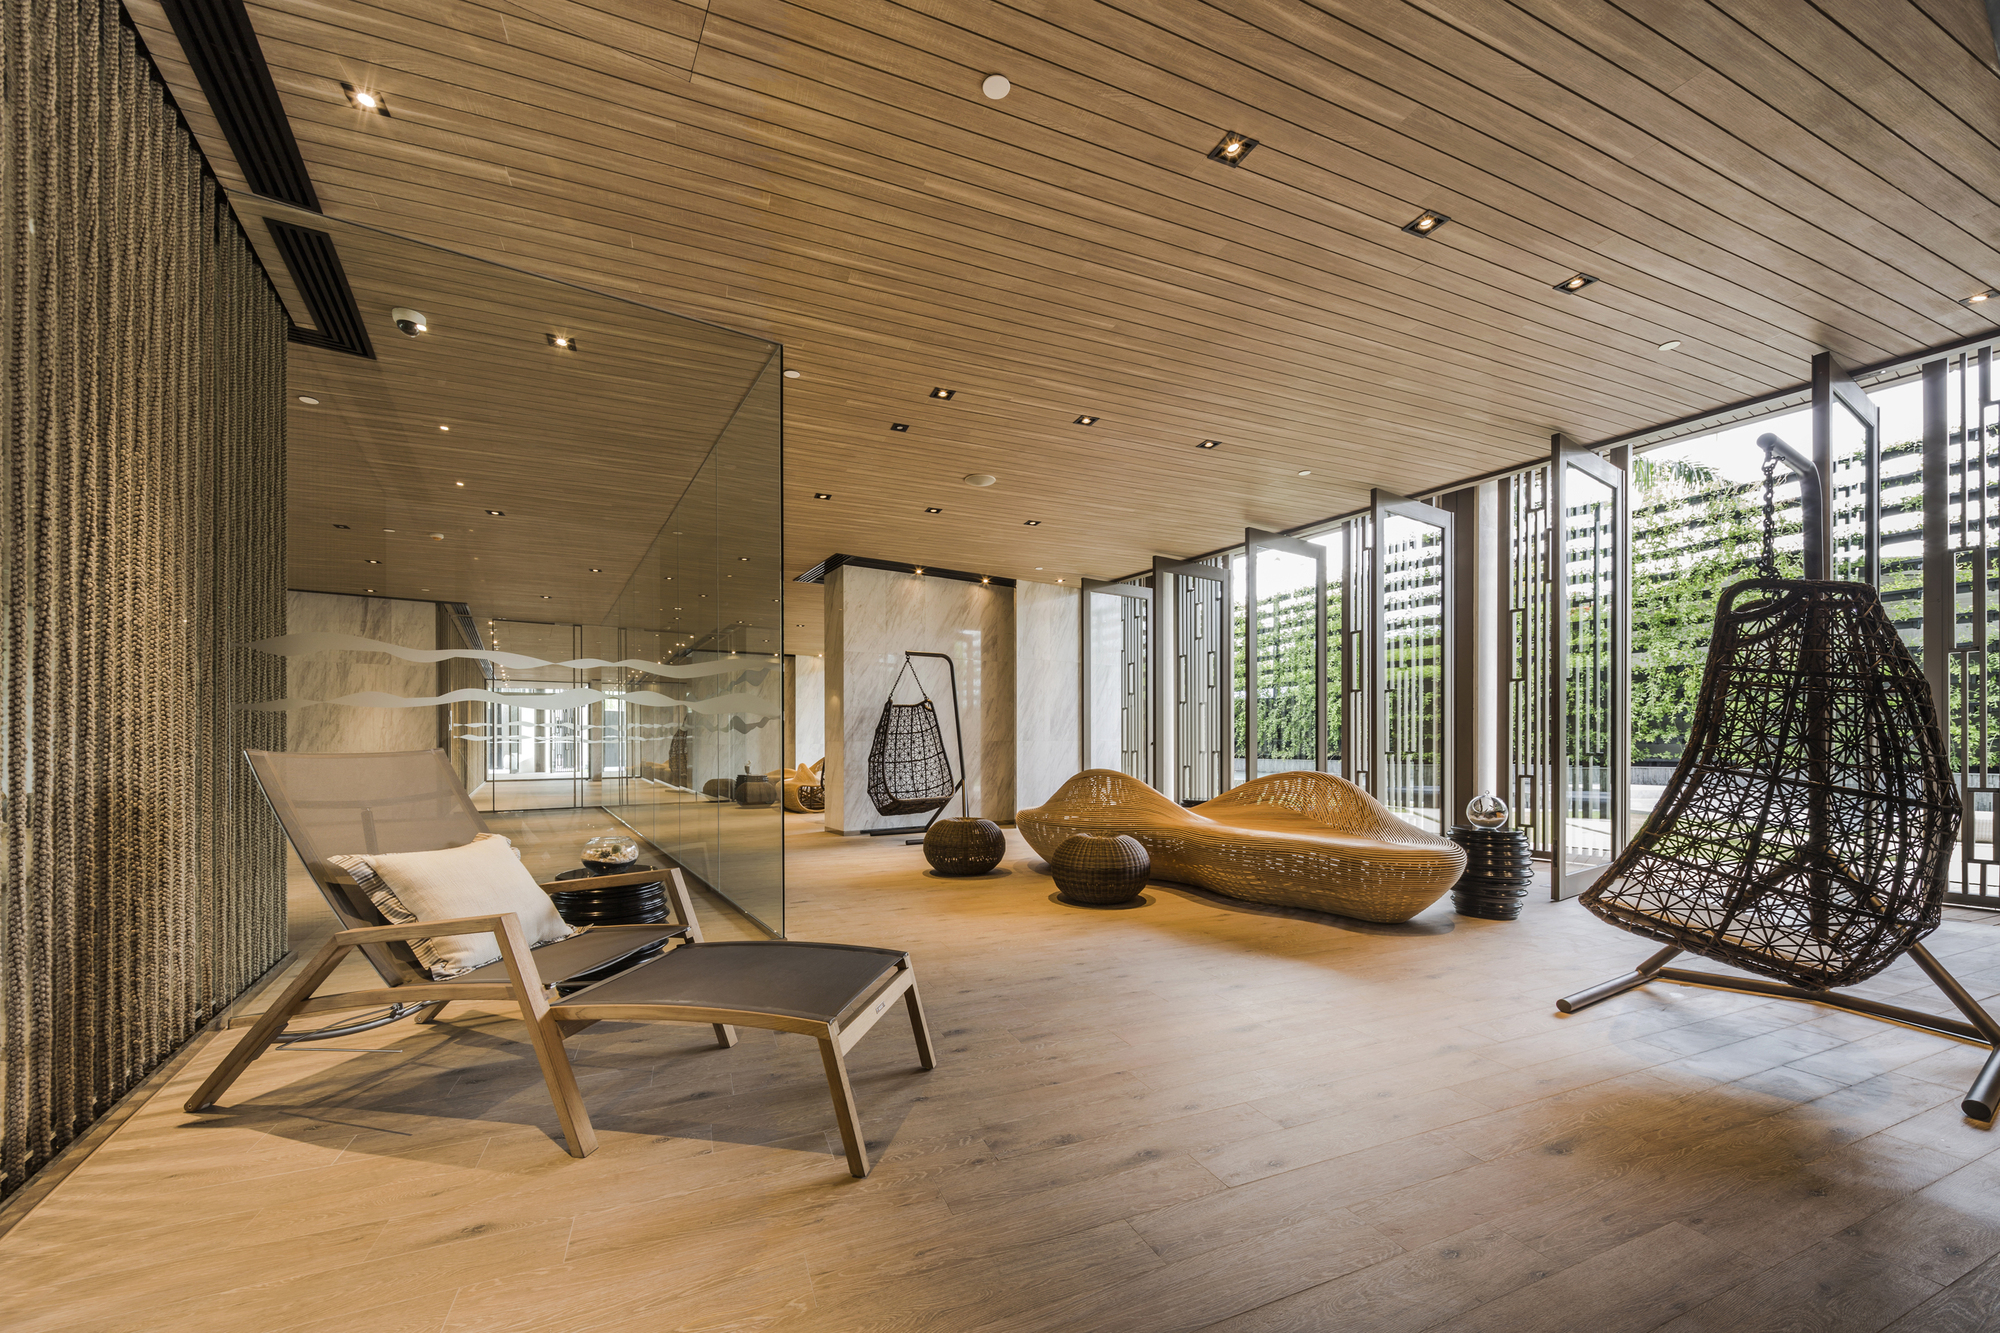 Gallery of baan plai haad steven j leach architects 11 for Hotel design ce